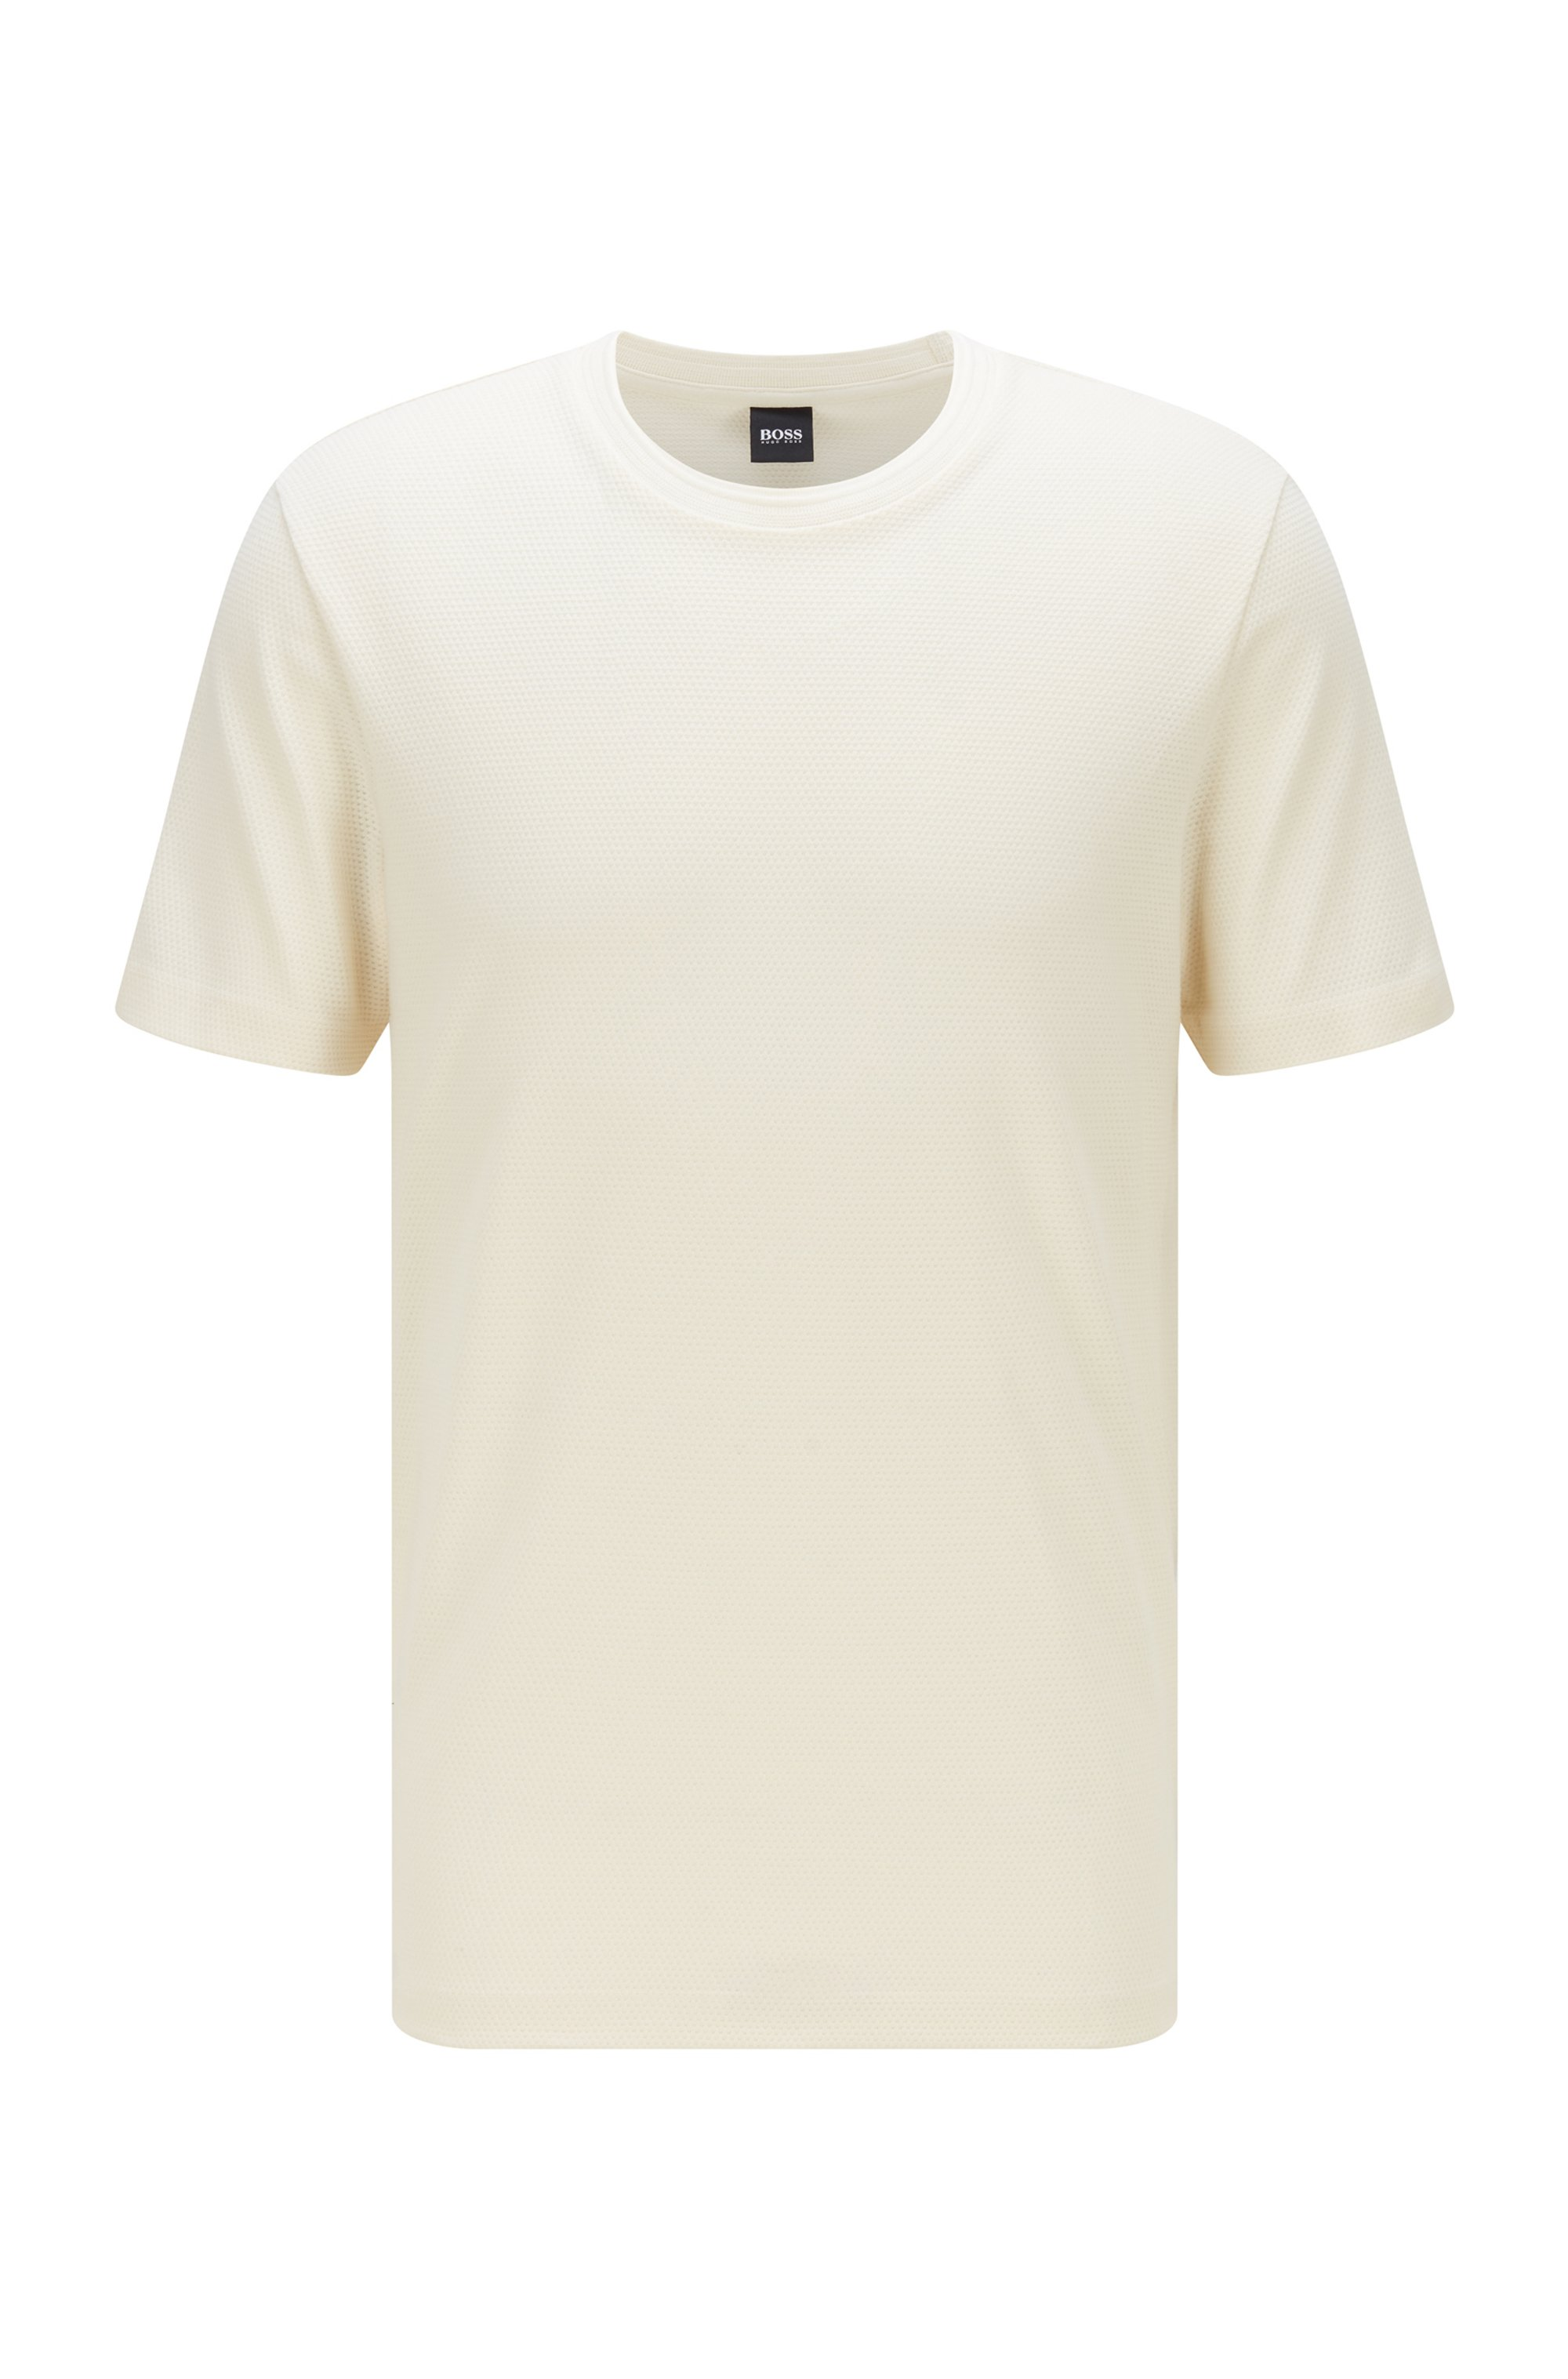 Cotton-blend T-shirt with bubble-jacquard structure, White